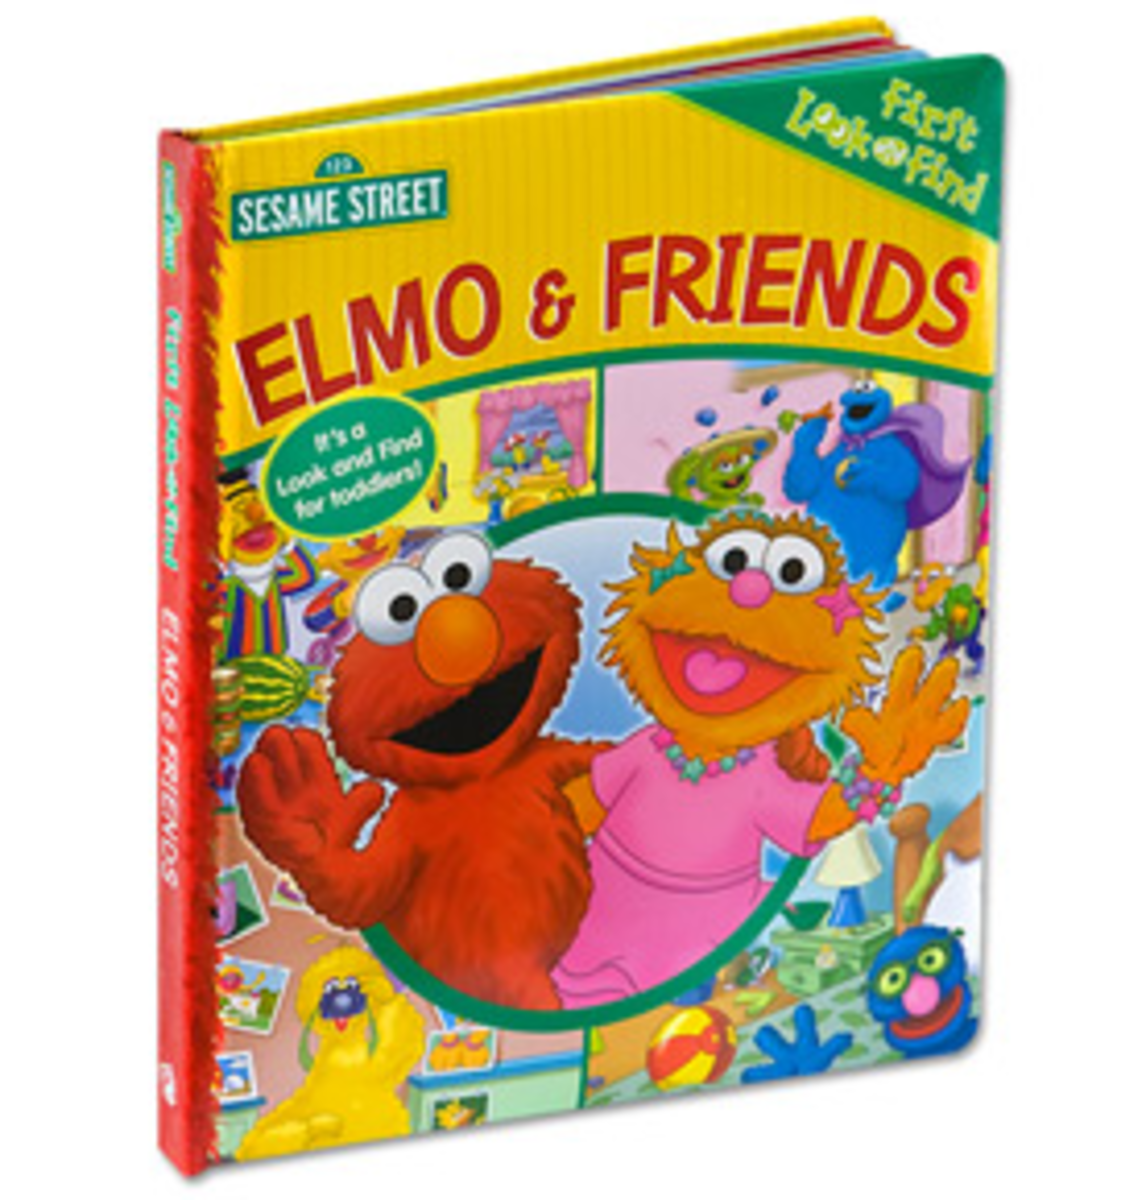 Sesame Street Look and Find - Elmo and Friends